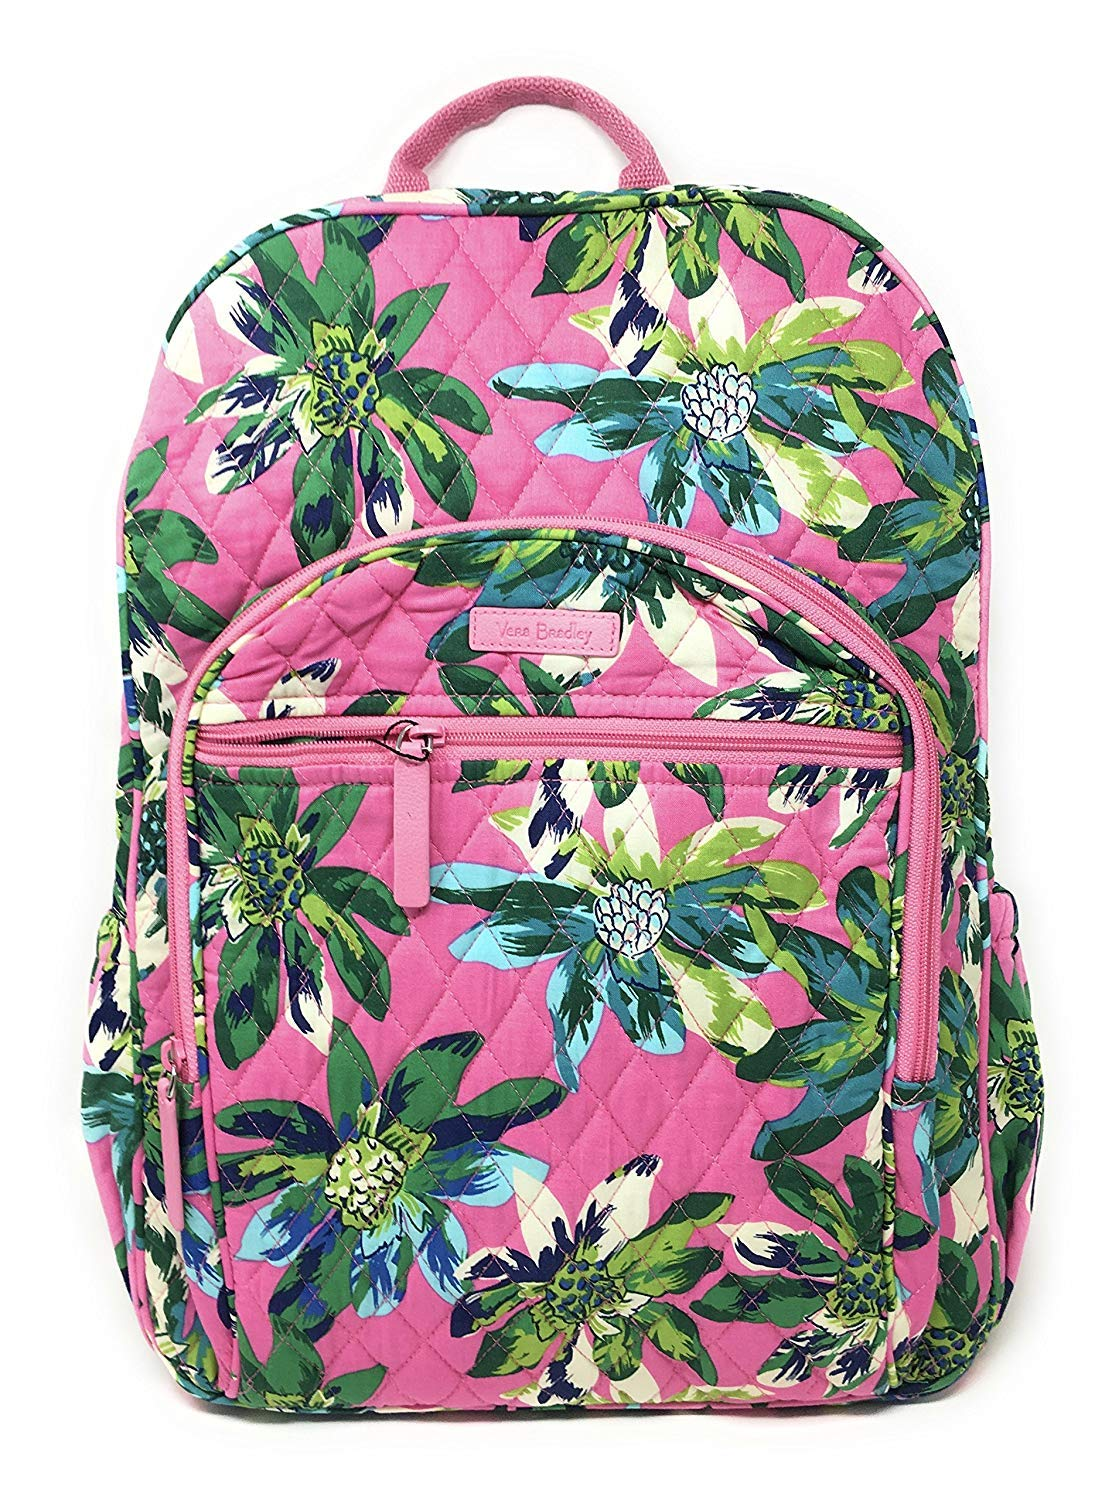 Vera Bradley Campus Backpack with Solid Color Interior (Updated Version) (Tropical Paradise with Blue Interior) by Vera Bradley